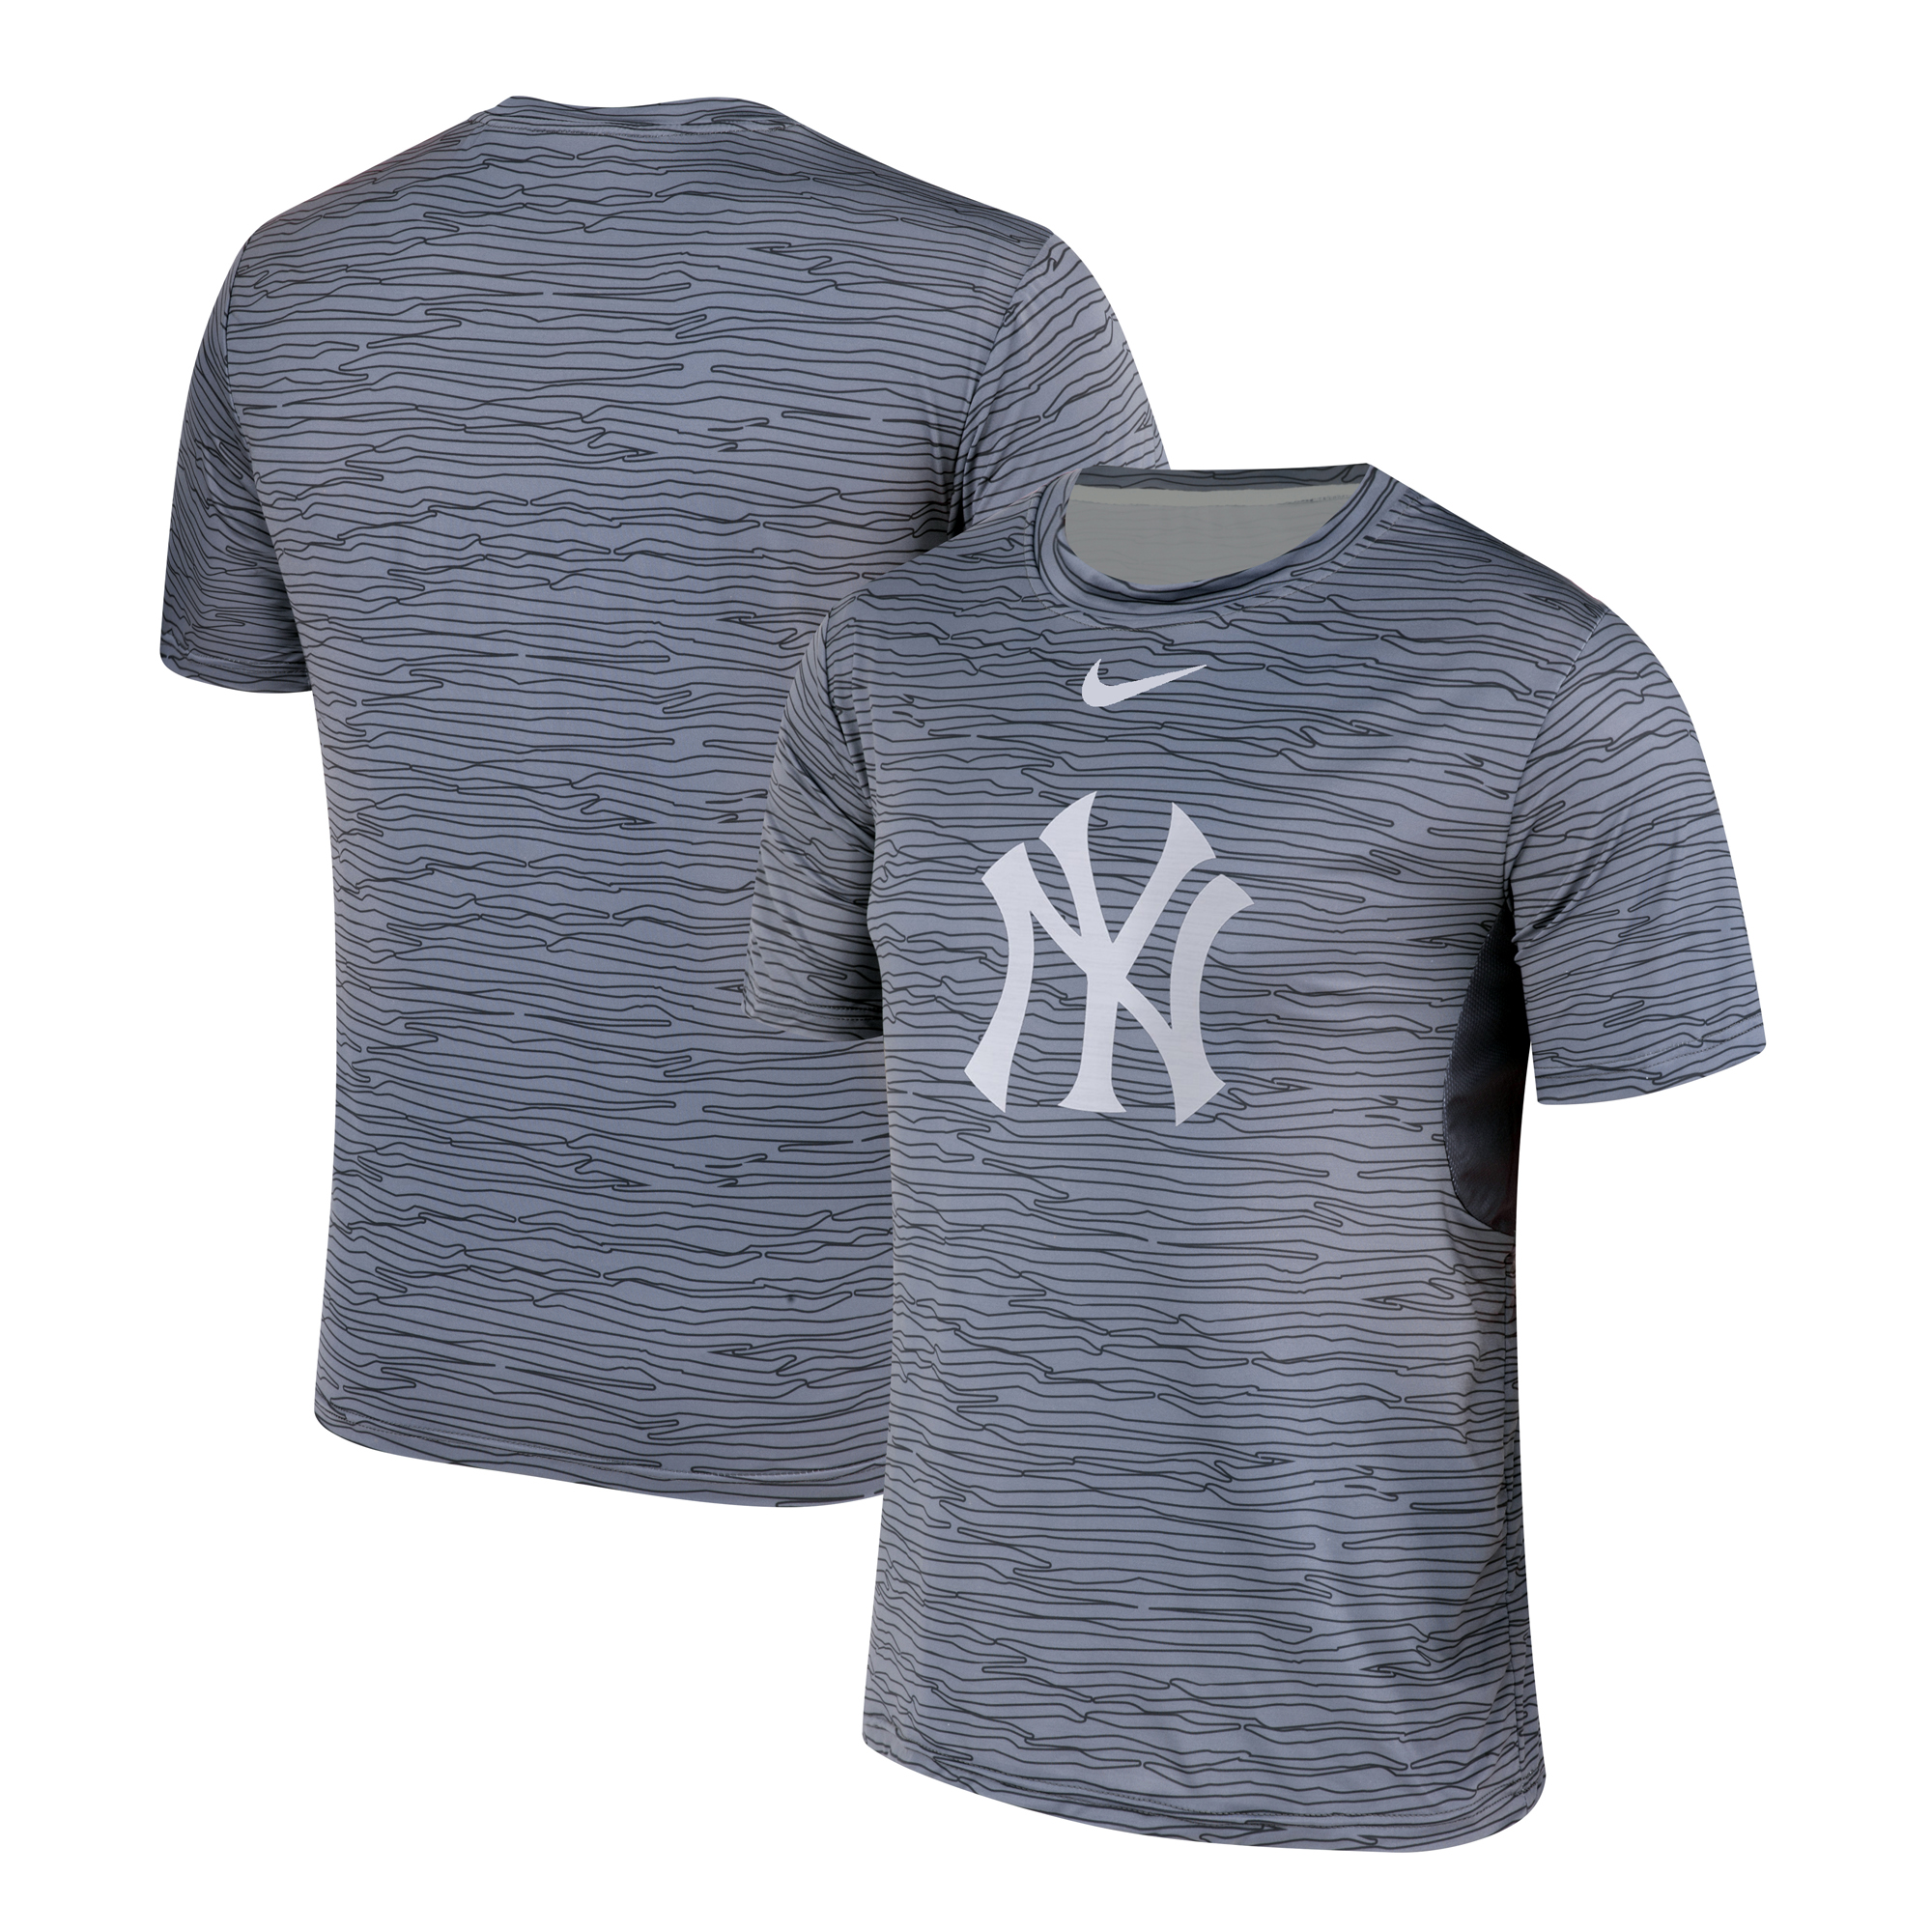 Nike New York Yankees Gray Black Striped Logo Performance T-Shirt